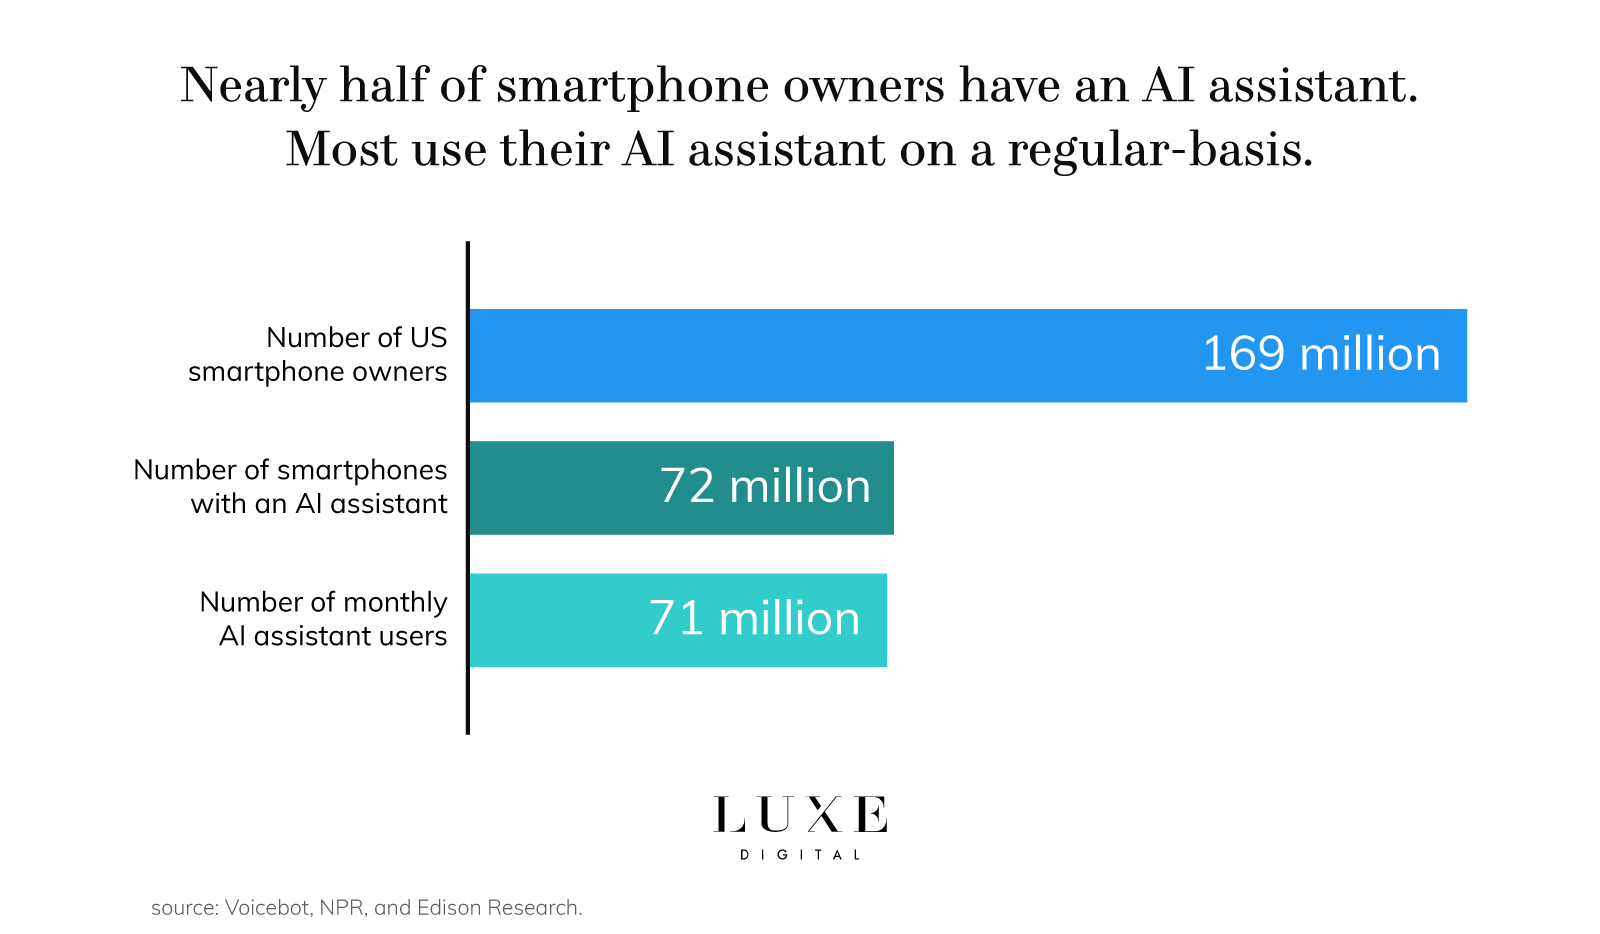 Luxe Digital luxury retail technology ai assistant